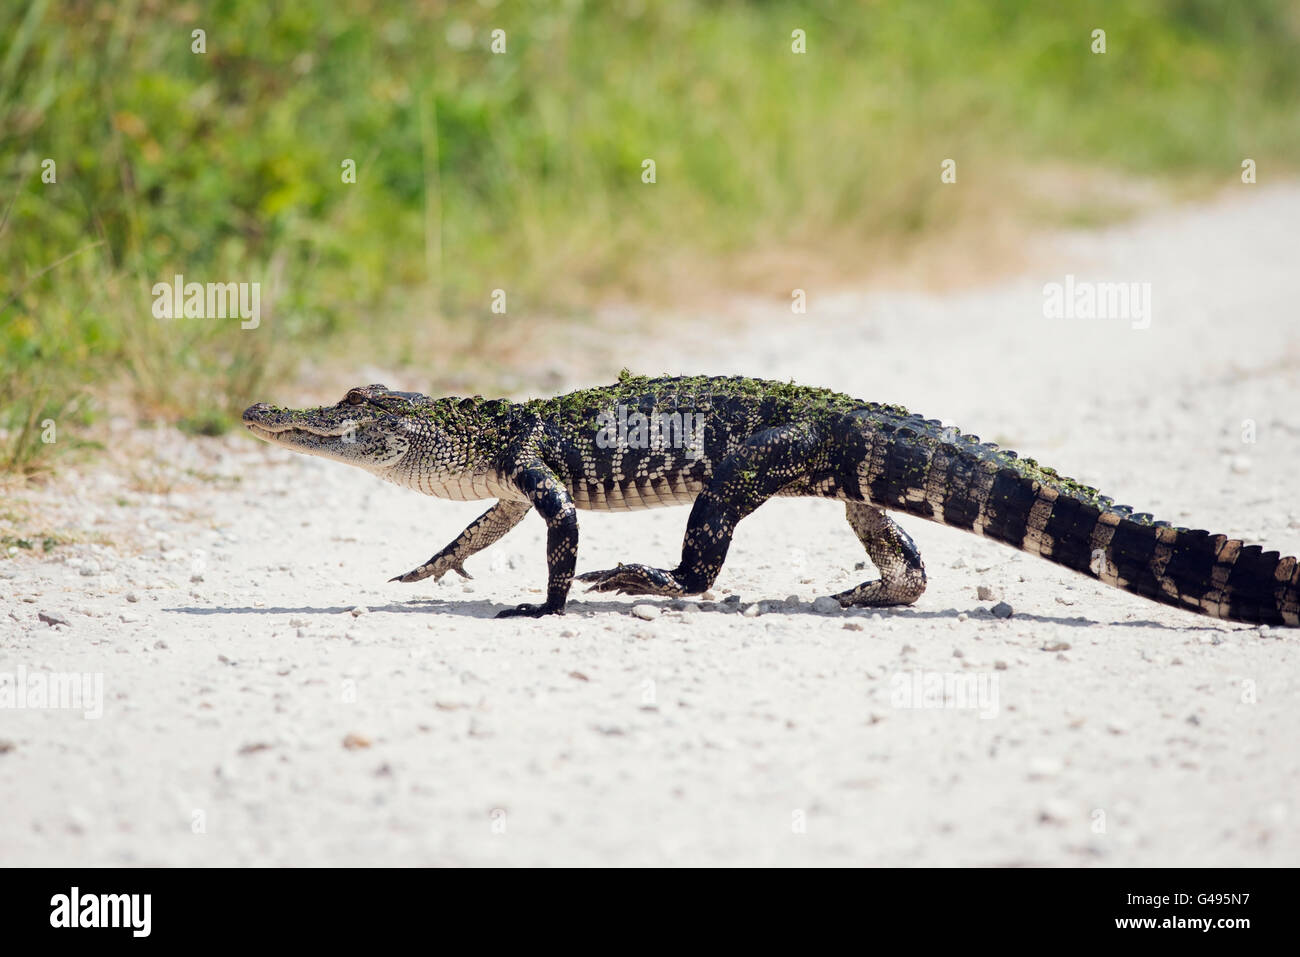 Young Alligator Crossing the Road Stock Photo